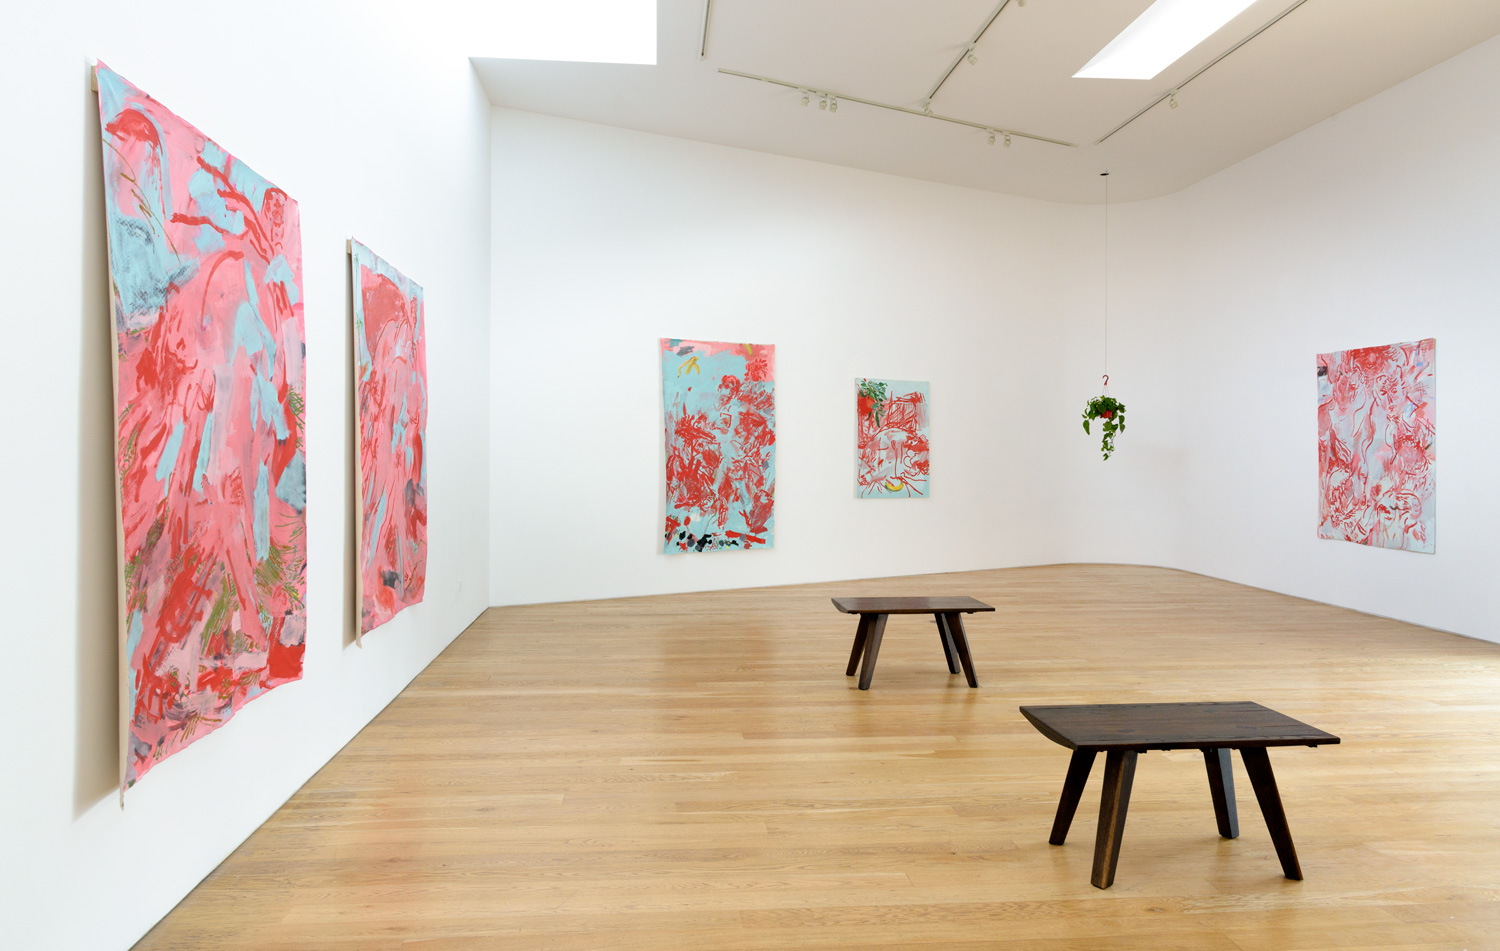 Frank J. Stockton  True Believers  Installation View, 2016